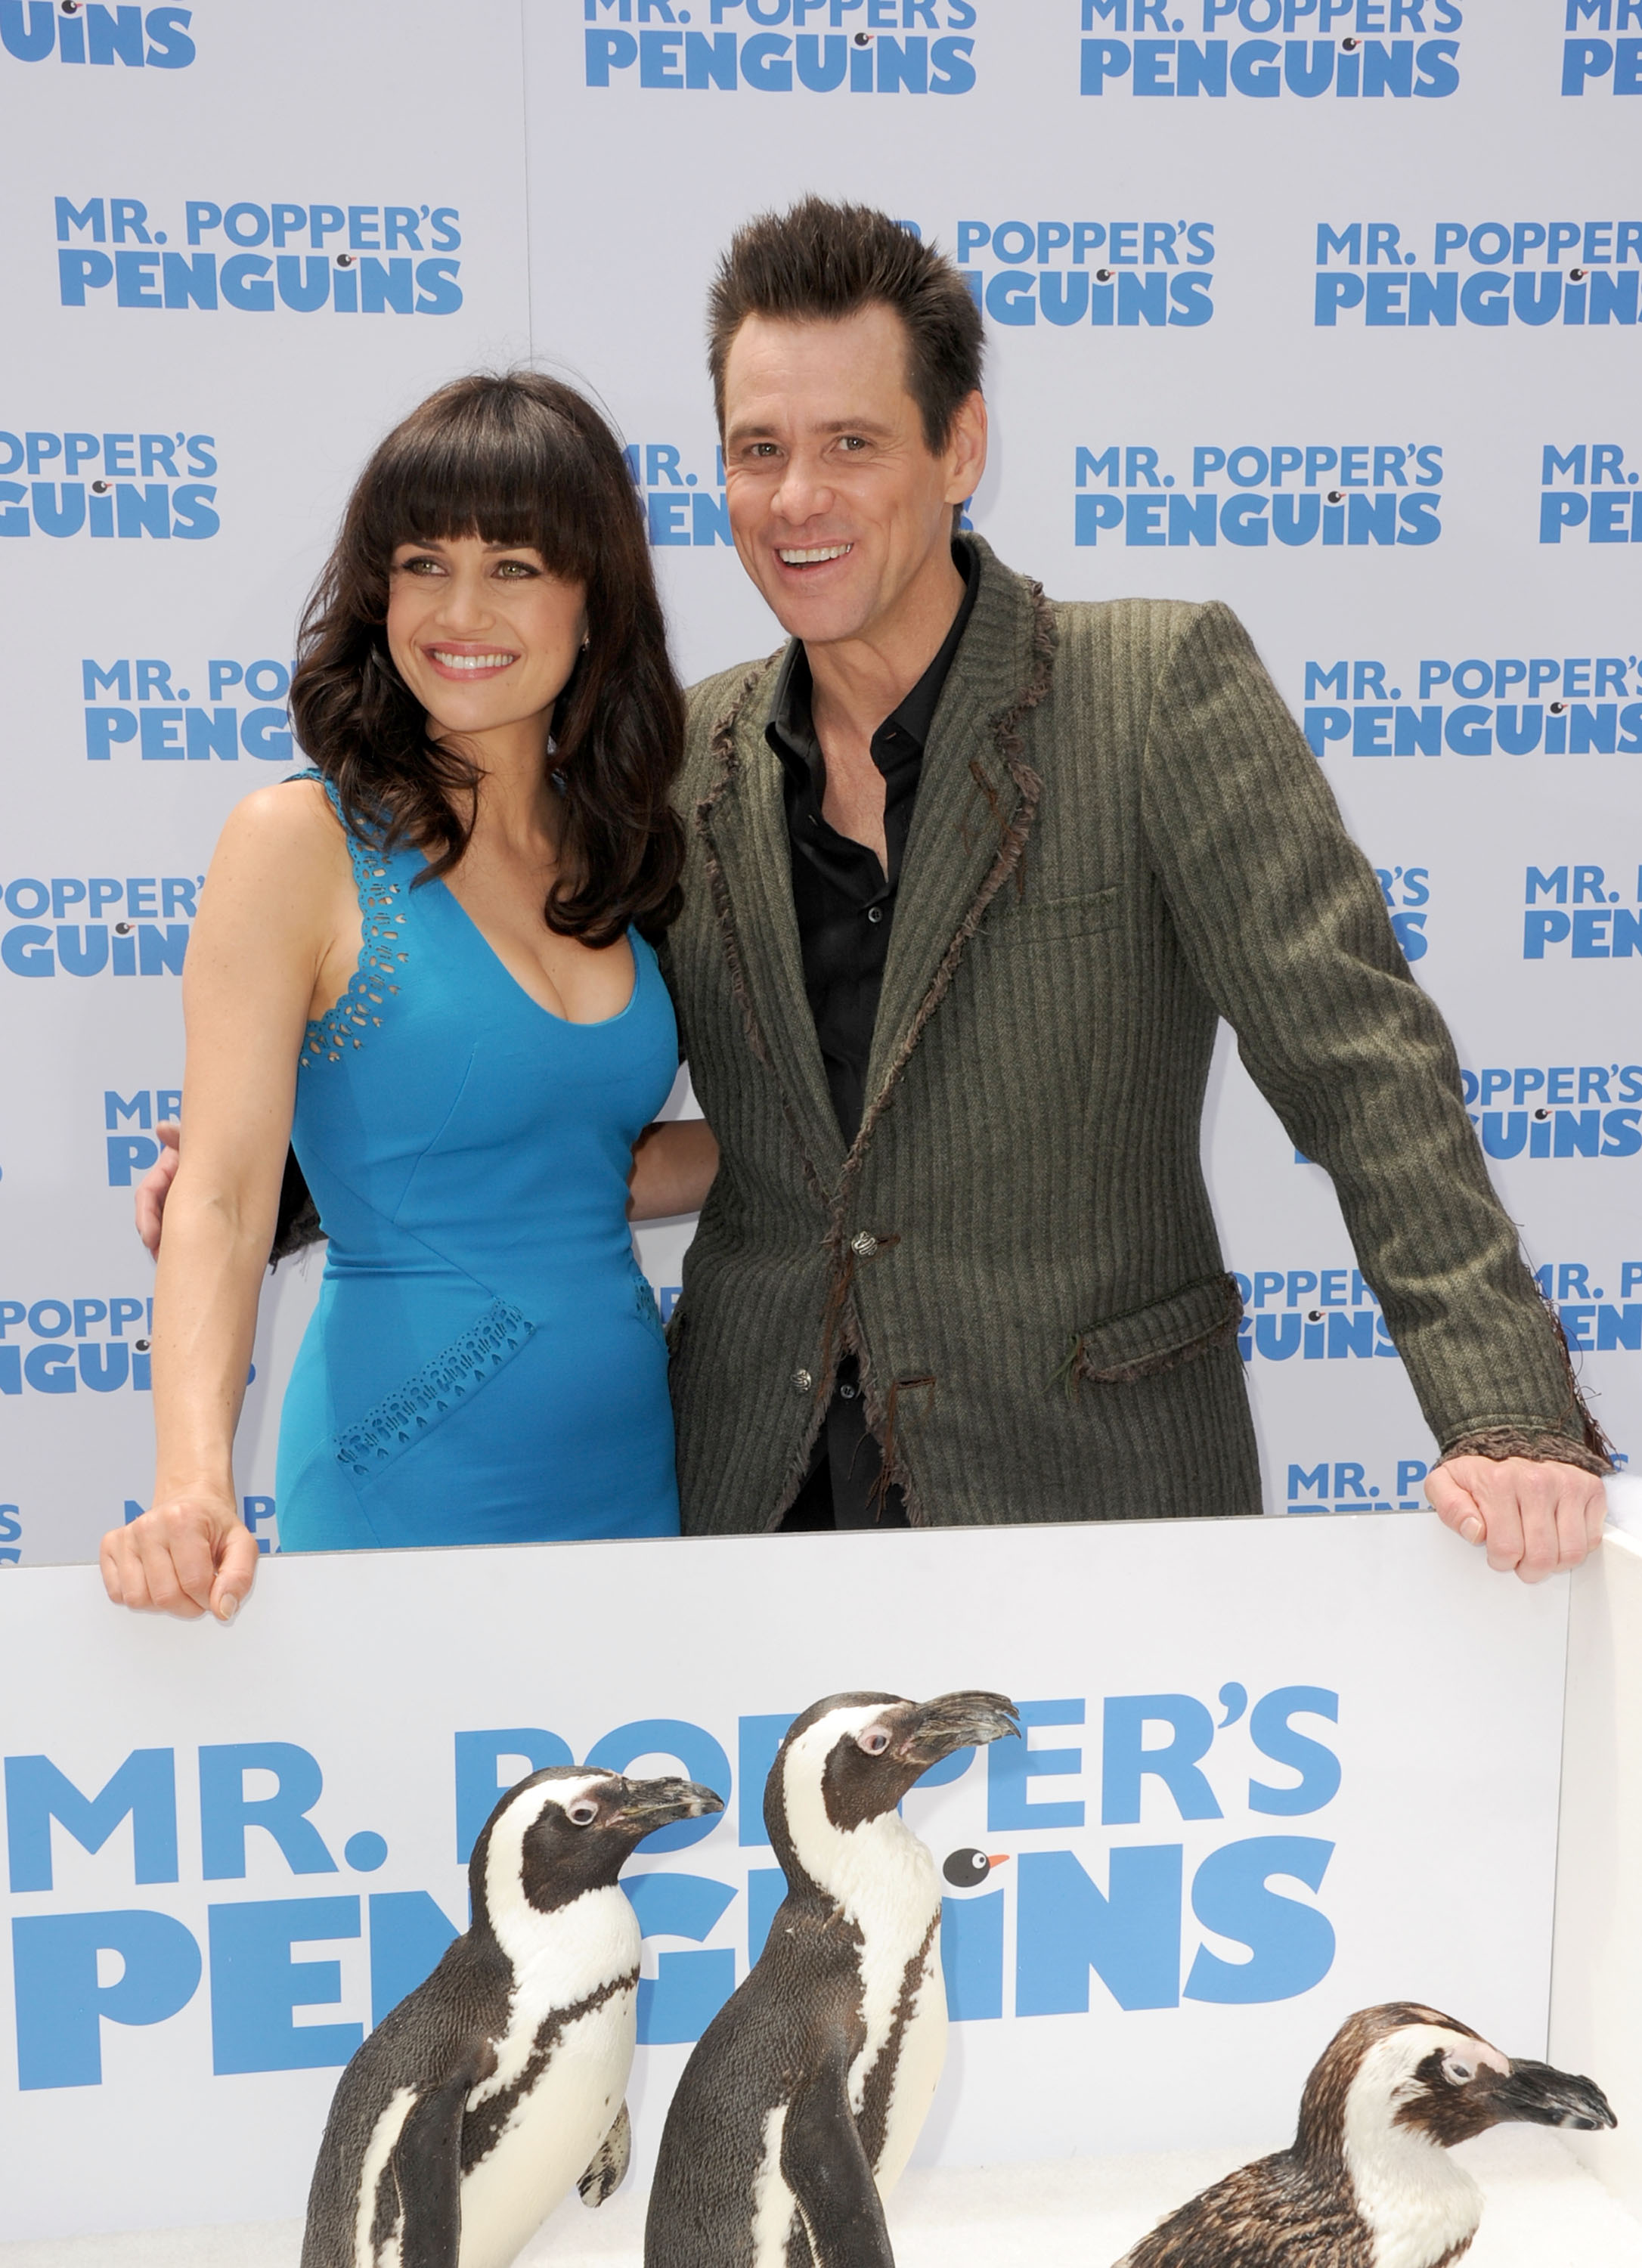 Carla Gugino and Jim Carrey get a chilly welcome from some tuxedoed friends at the 2011 premiere of Mr. Popper's Penguins.